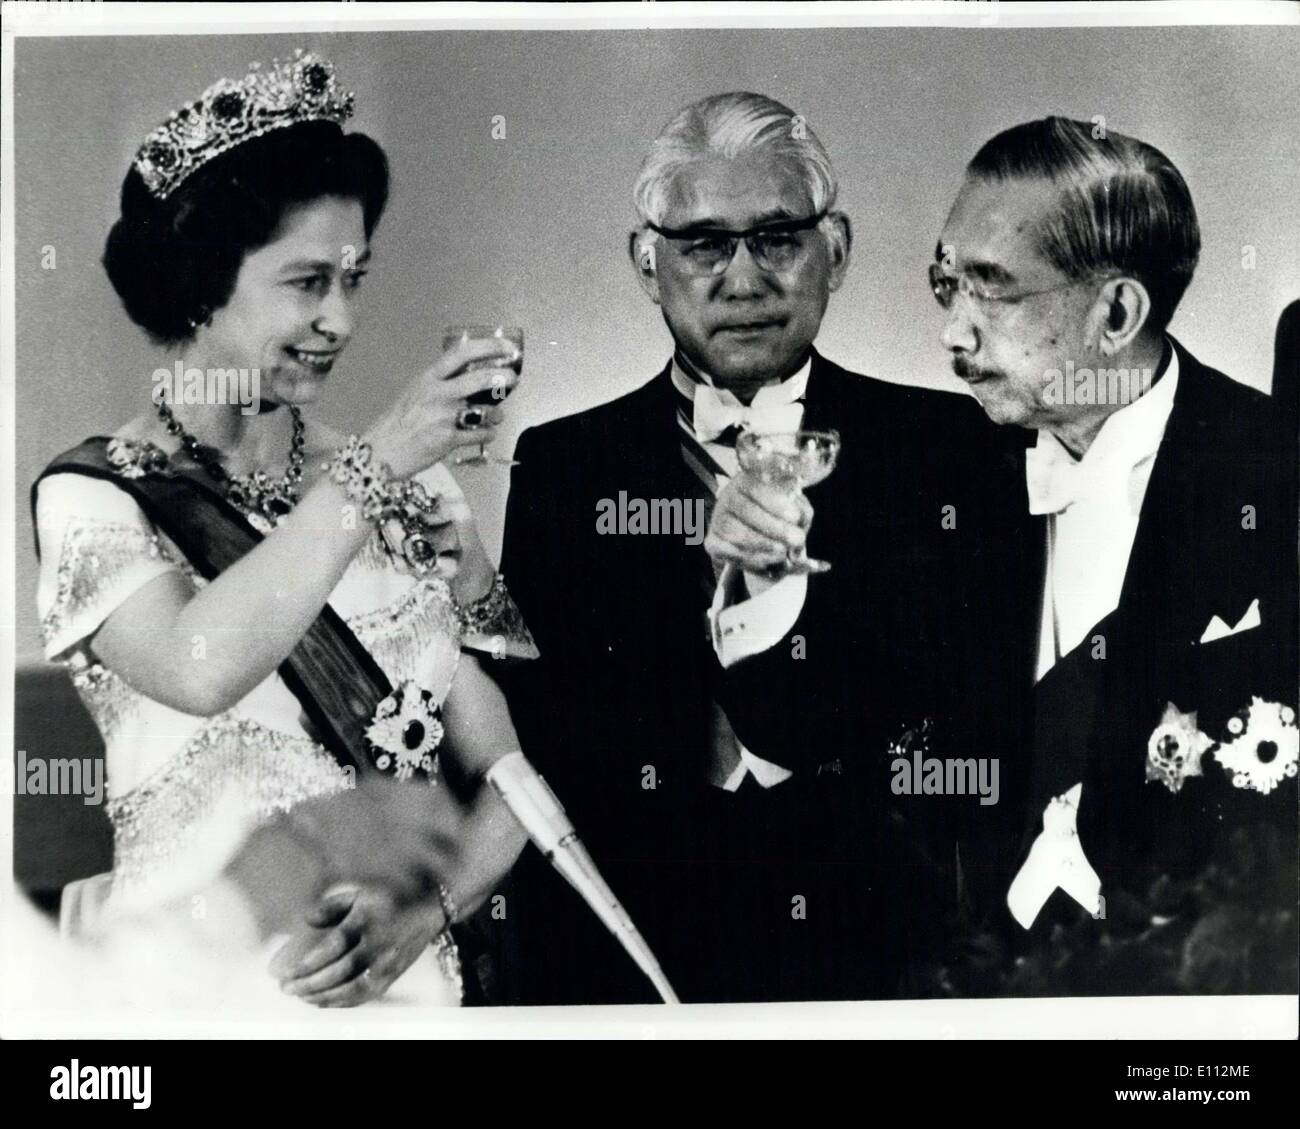 May 10, 1975 - The Emperor Toasts The Queen: The Queen is being greeted with a toast by Emperor Hironito of Japan in Tokyo when - Stock Image